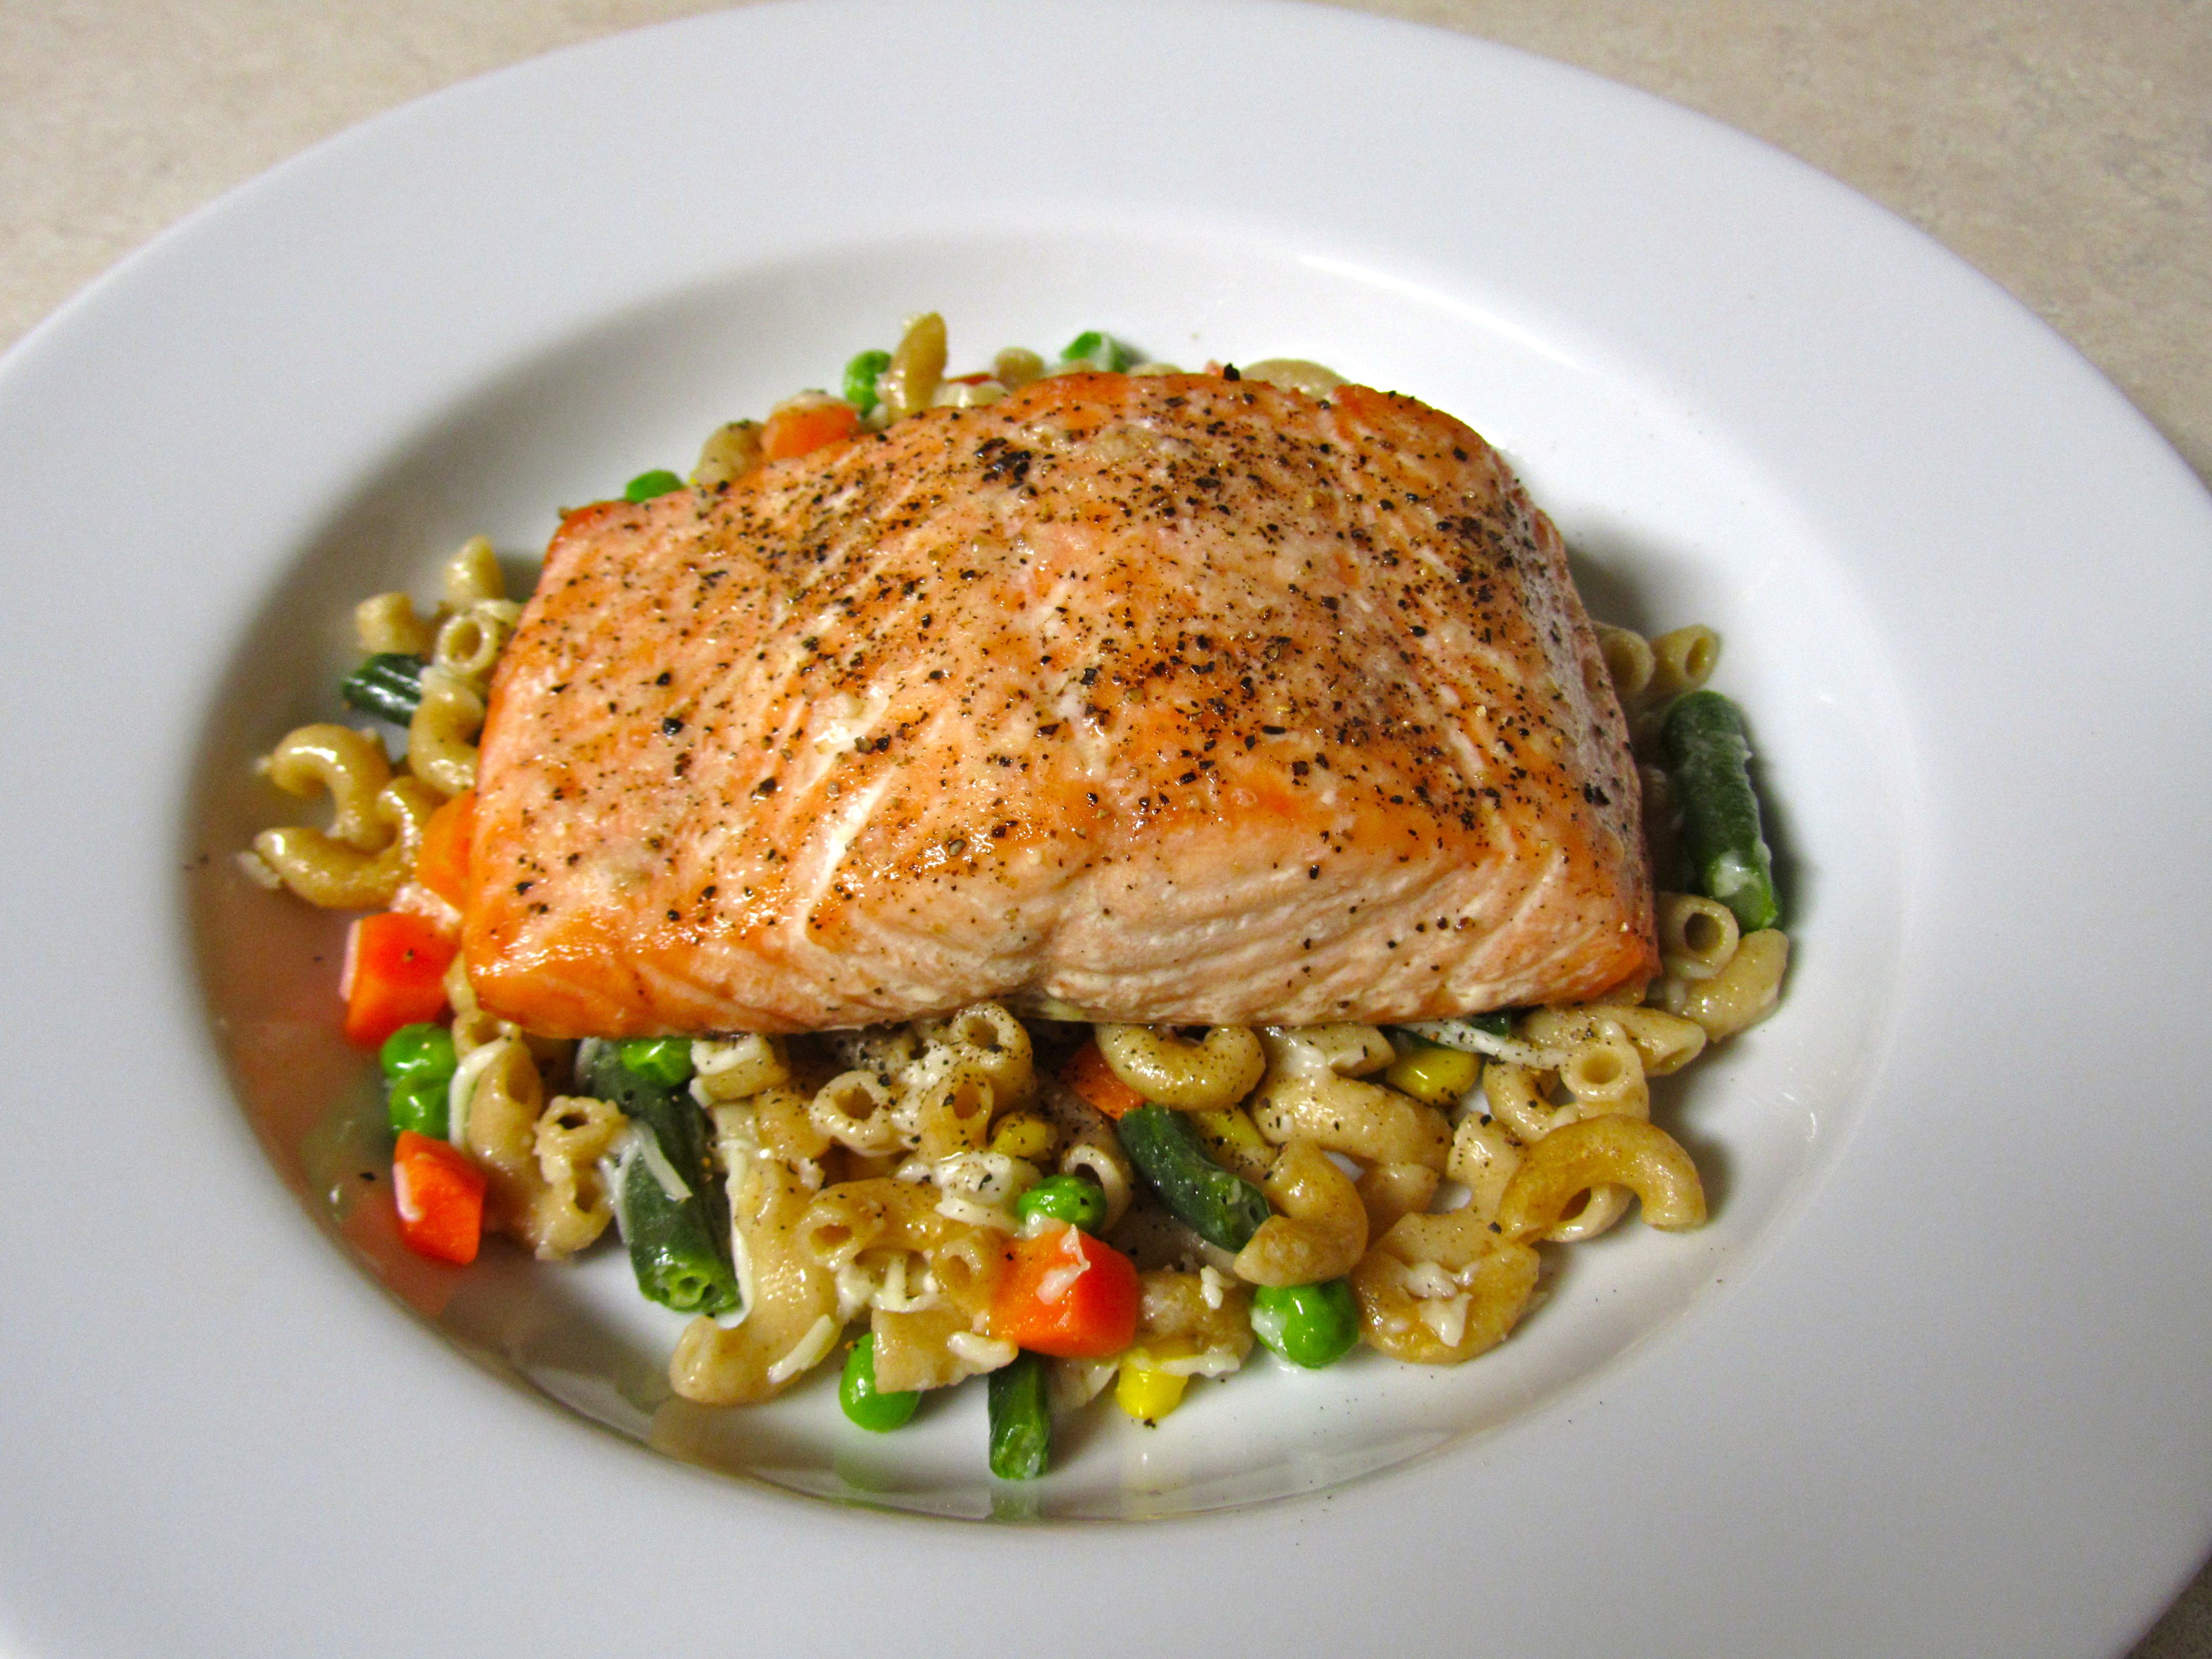 Baked Salmon over Pasta with Vegetables & Healthy Dinner | Gourmet Memoirs